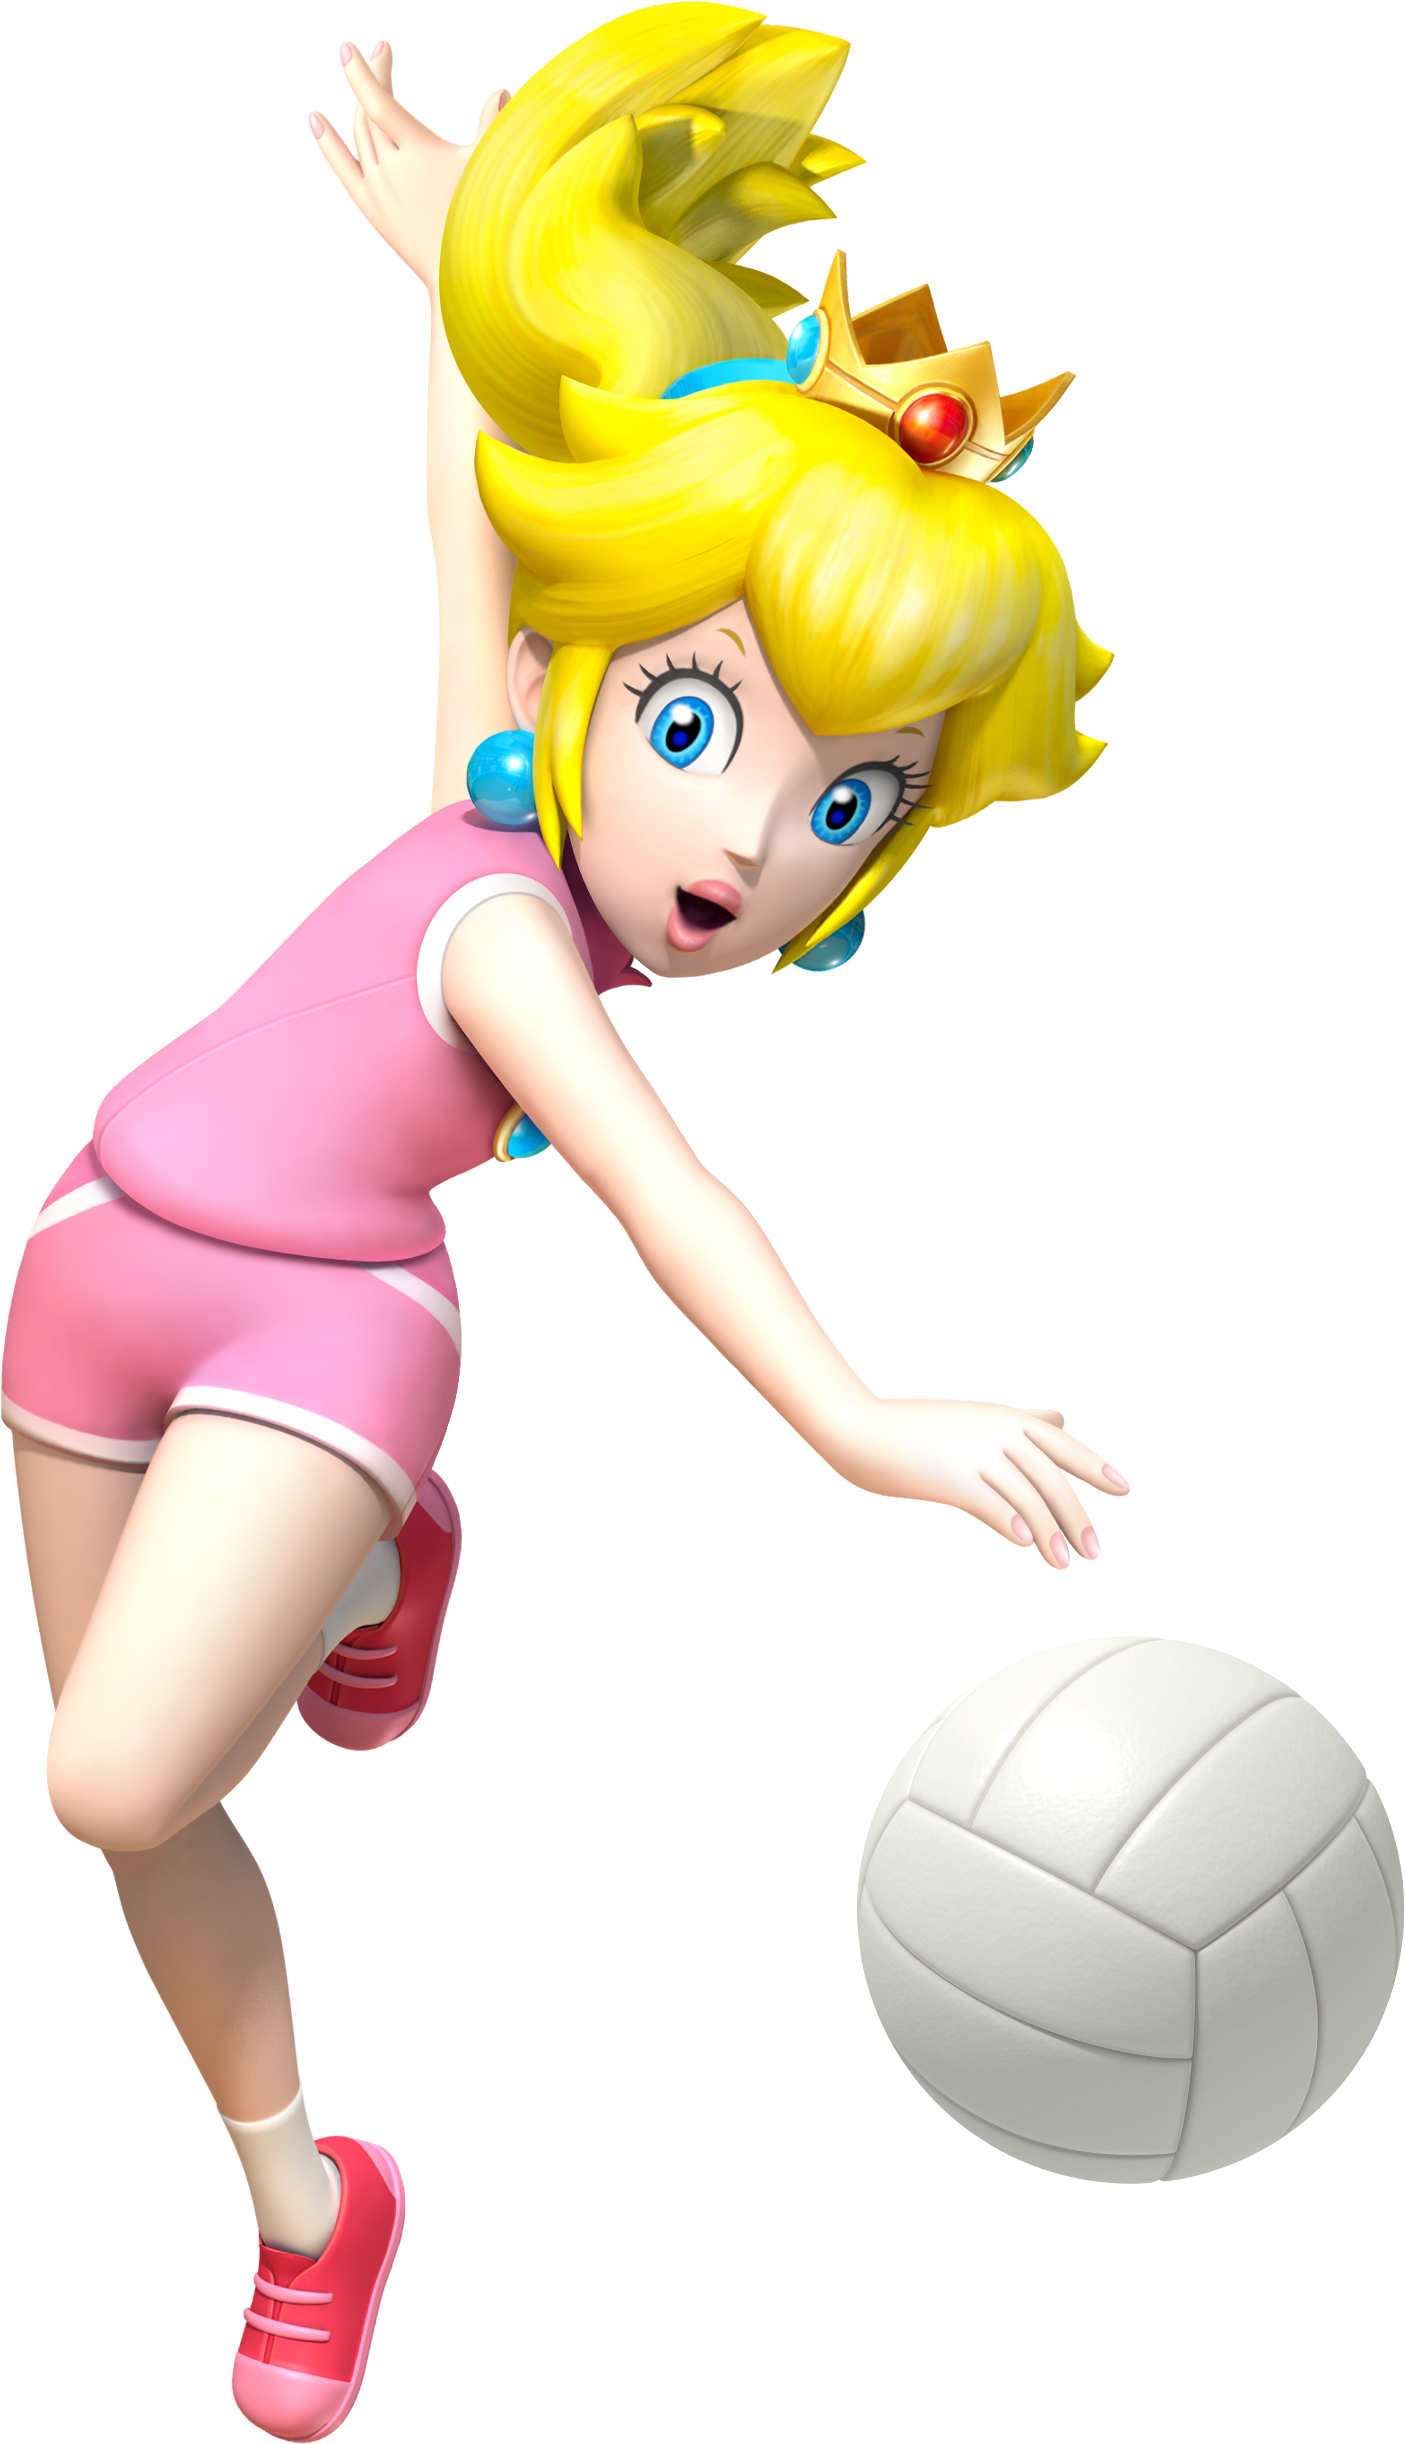 princess peach sports player wiki fandom powered by wikia